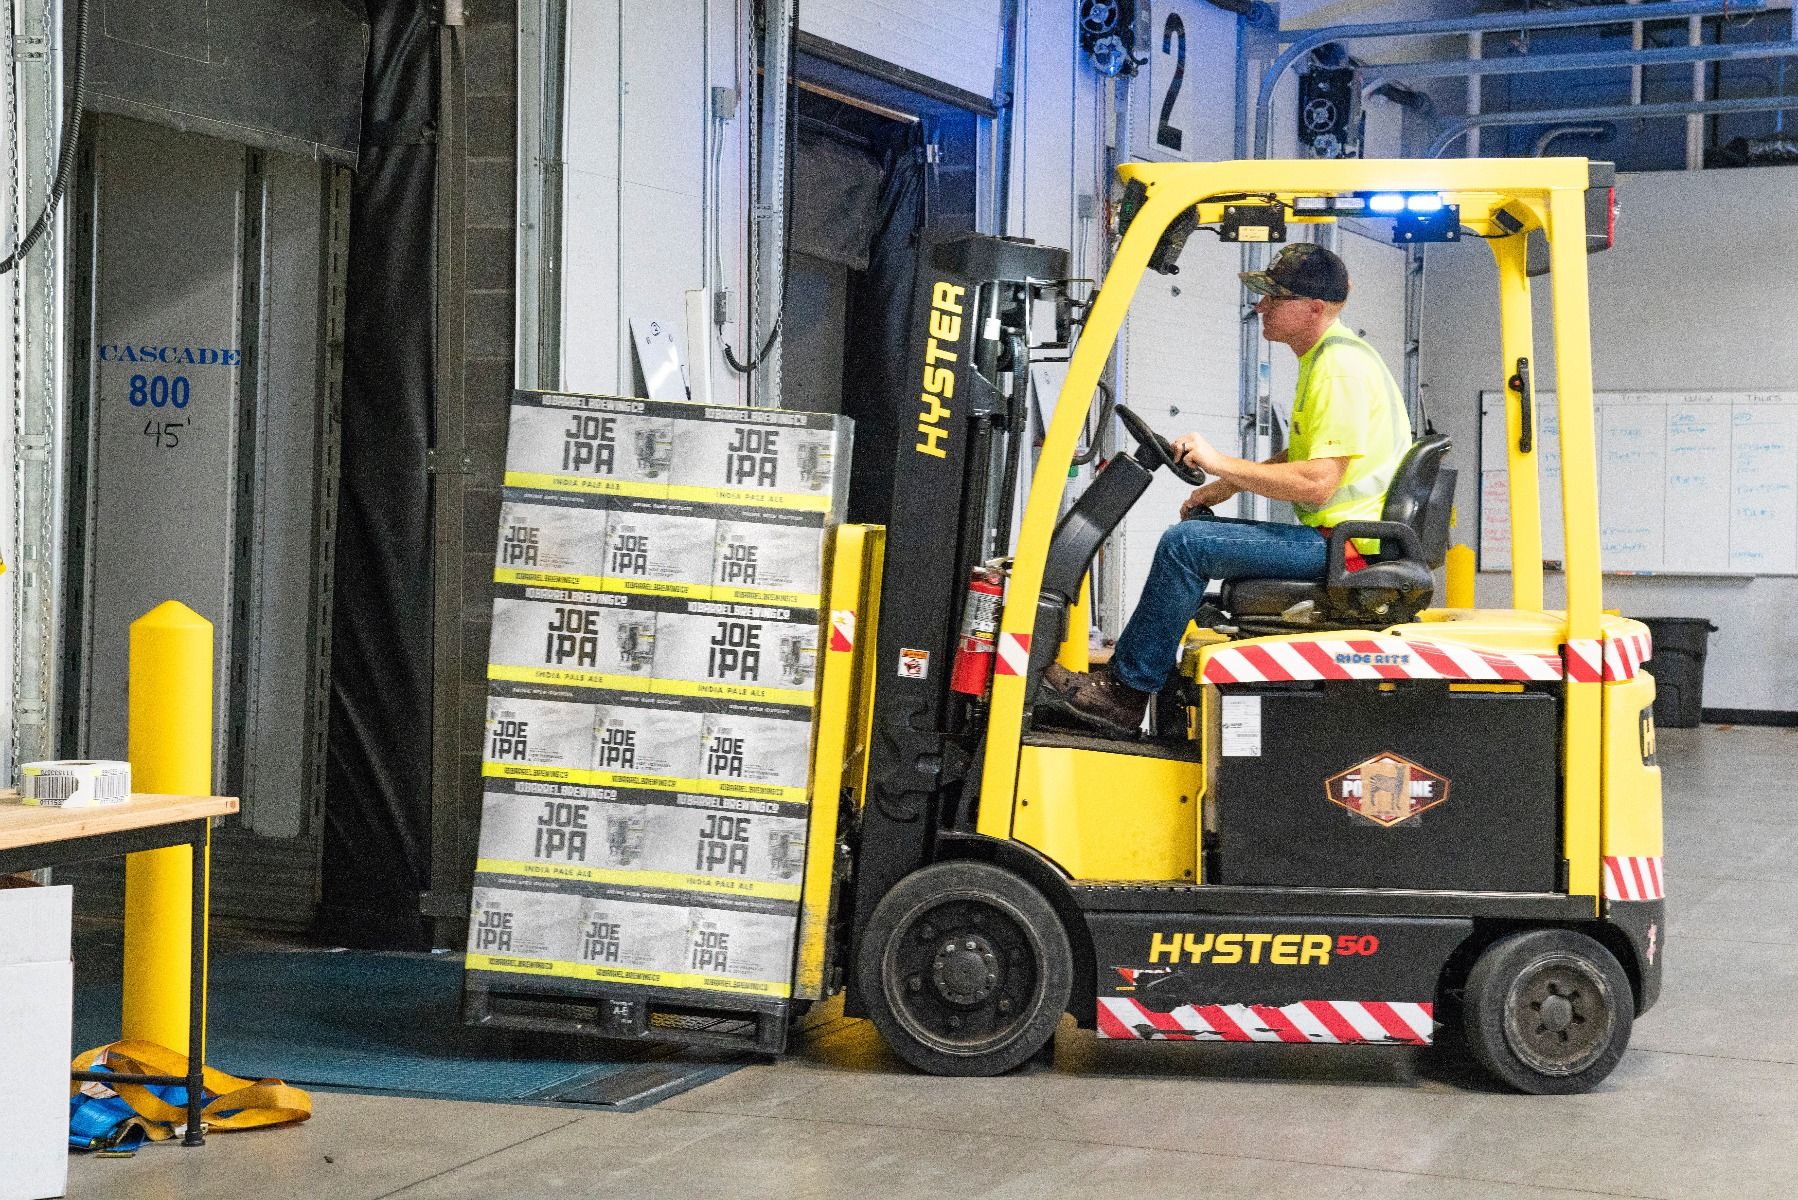 Forklift moving storage boxes in warehouse